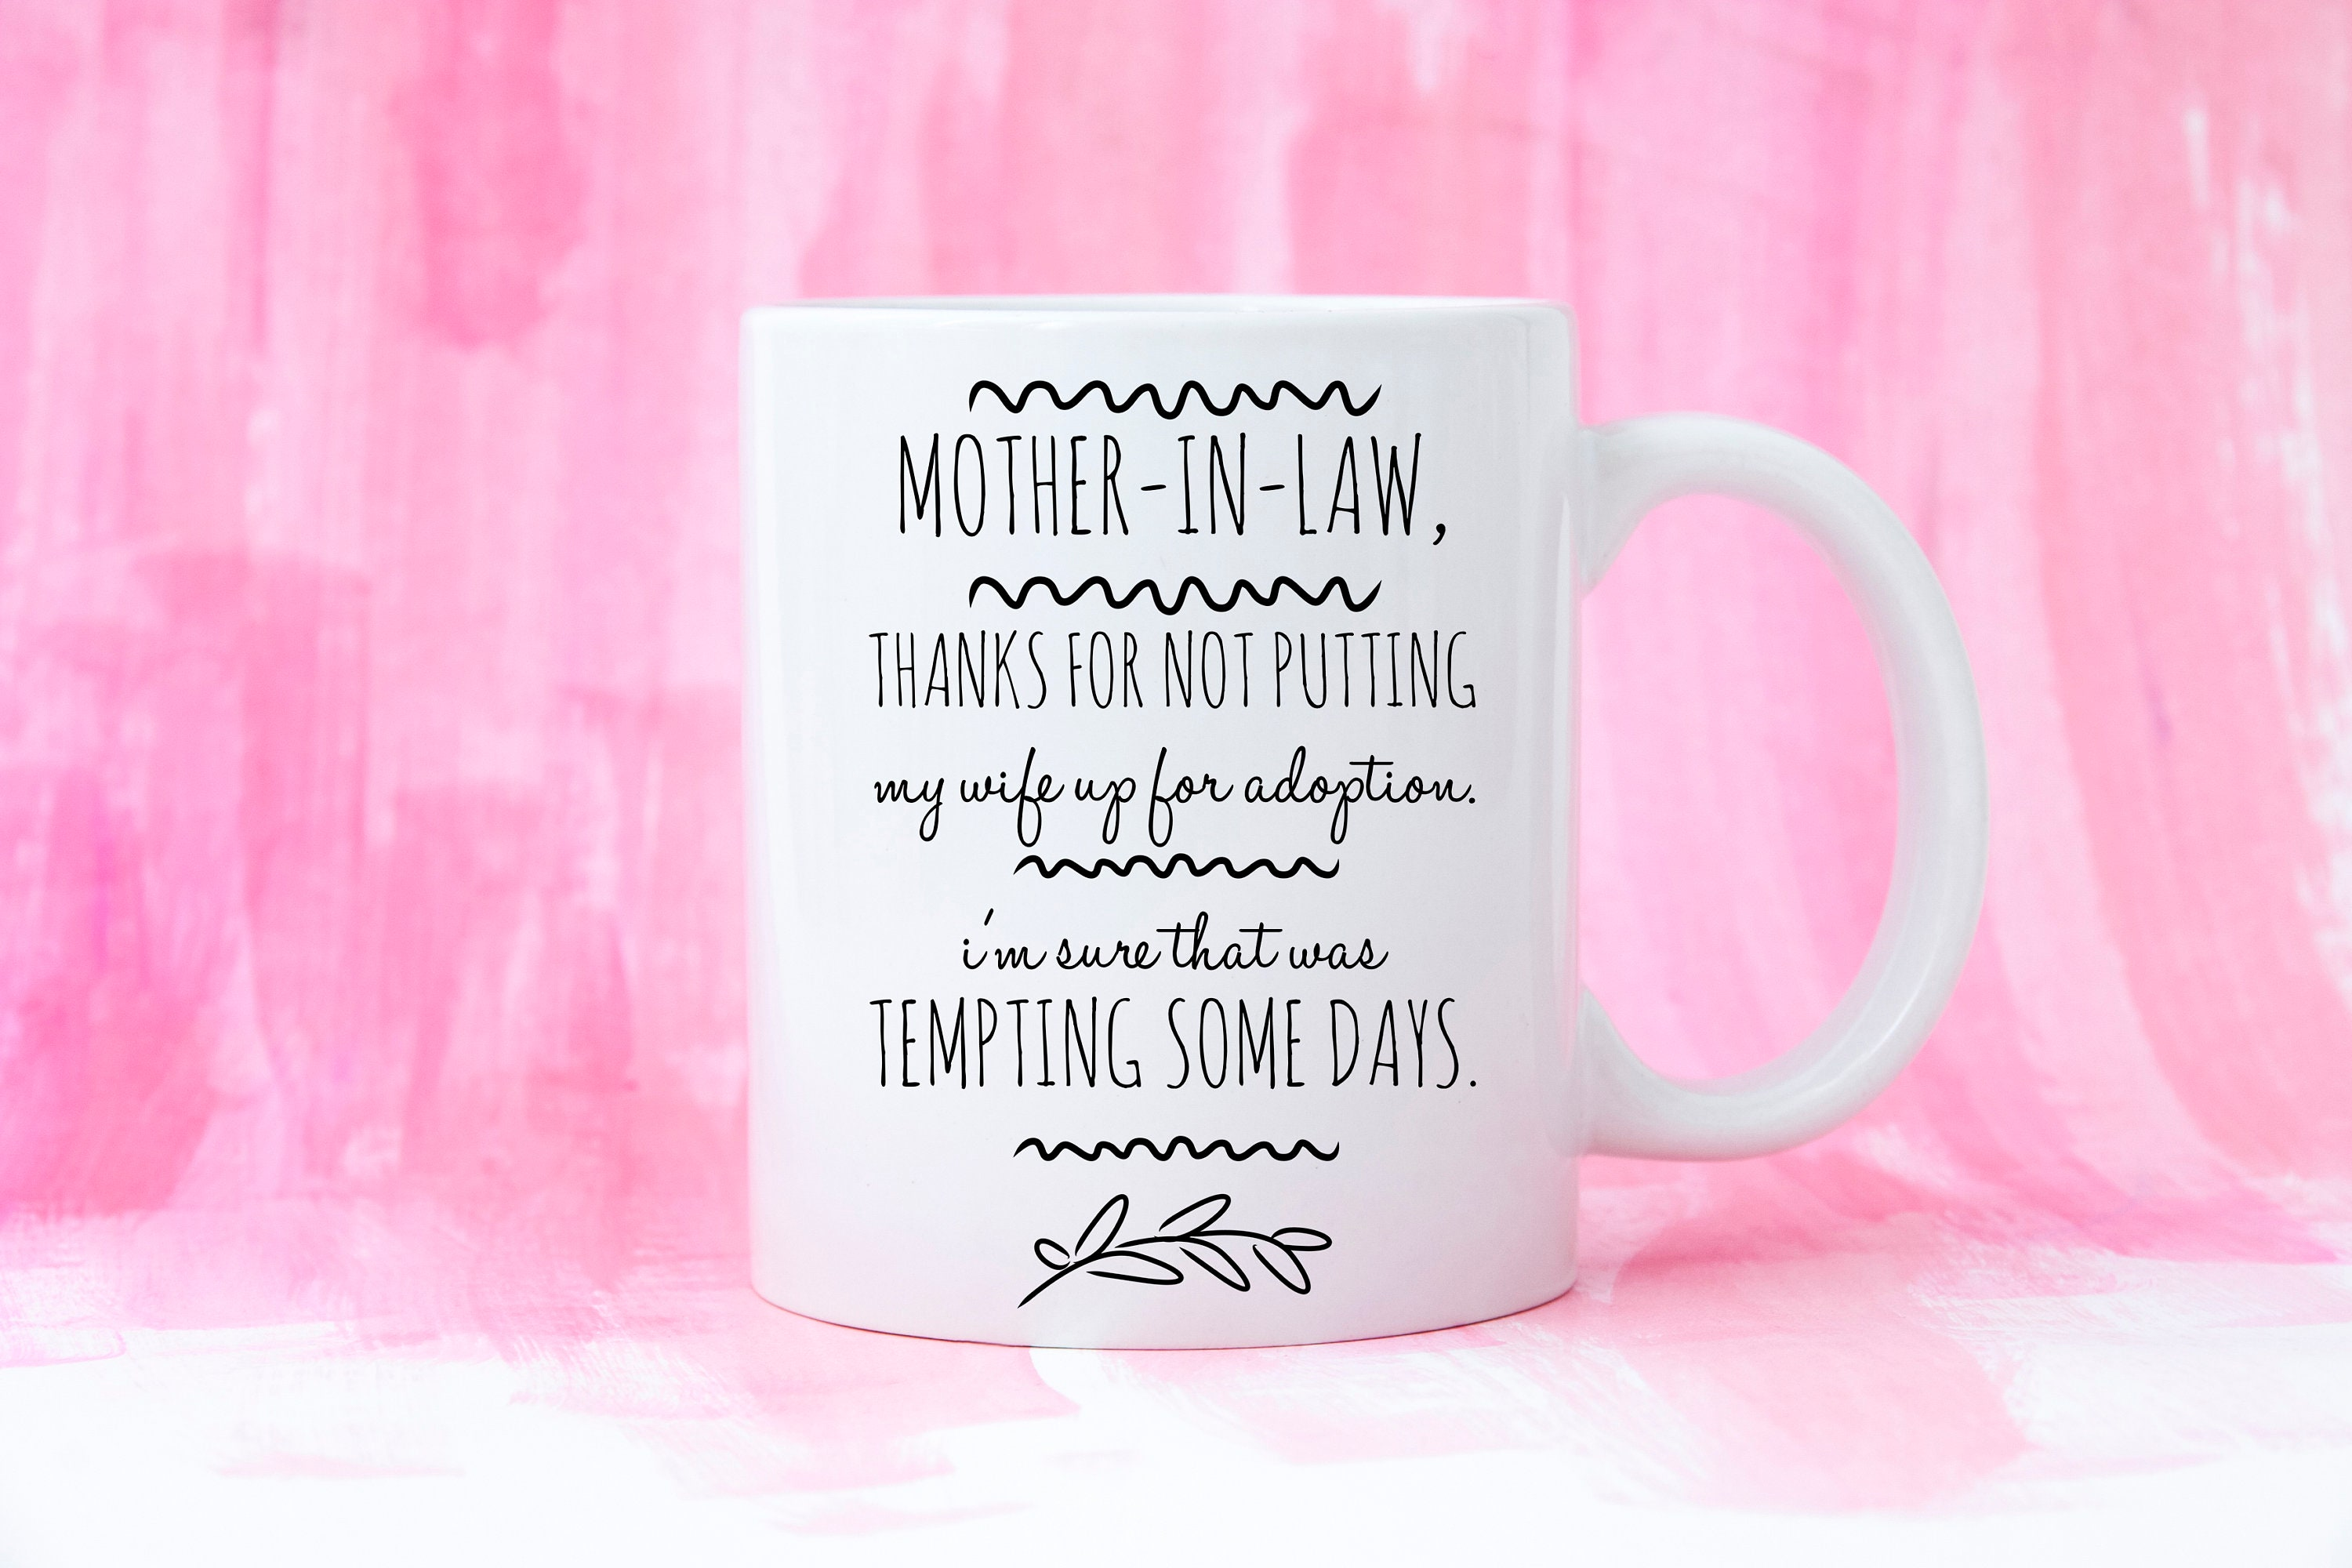 Mother Of The Bride Gift Mother In Law Gift Mother-in-law Gift